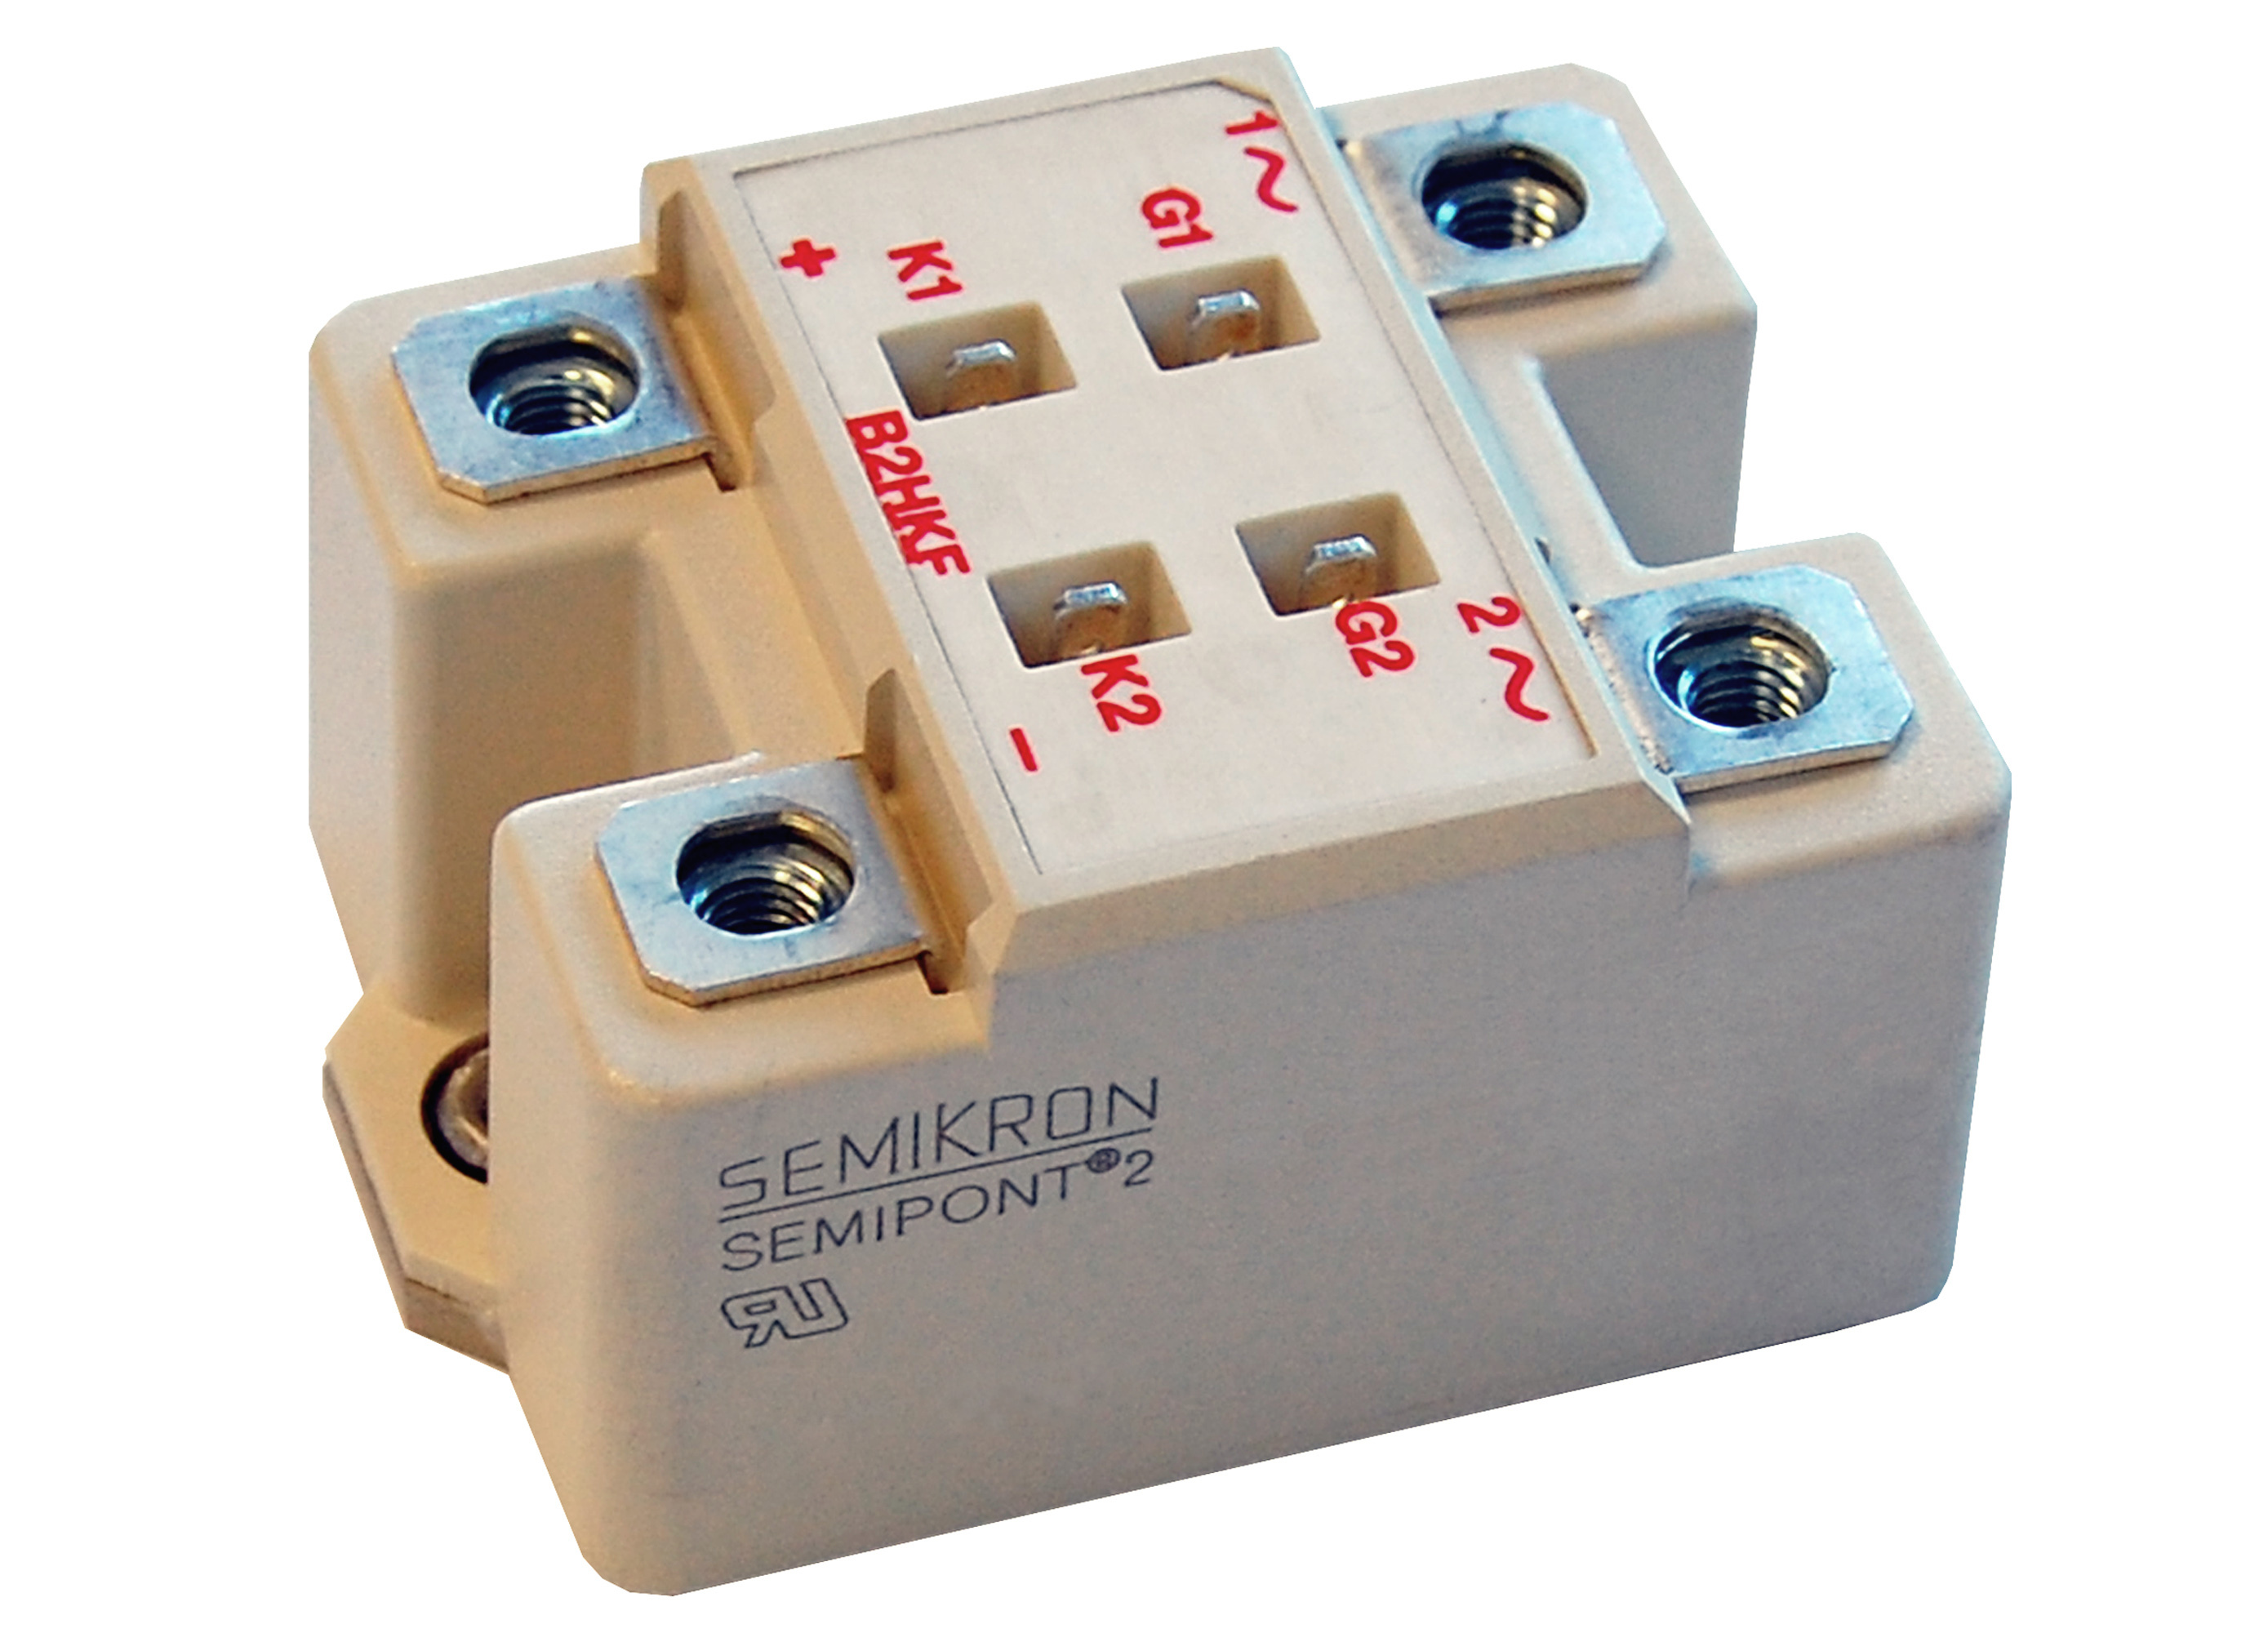 Semikron Online Shop Skch 40 12 Buy Power Modules The Two Diodes Are Part Of 37 A Bridge Rectifier Used In Circuit